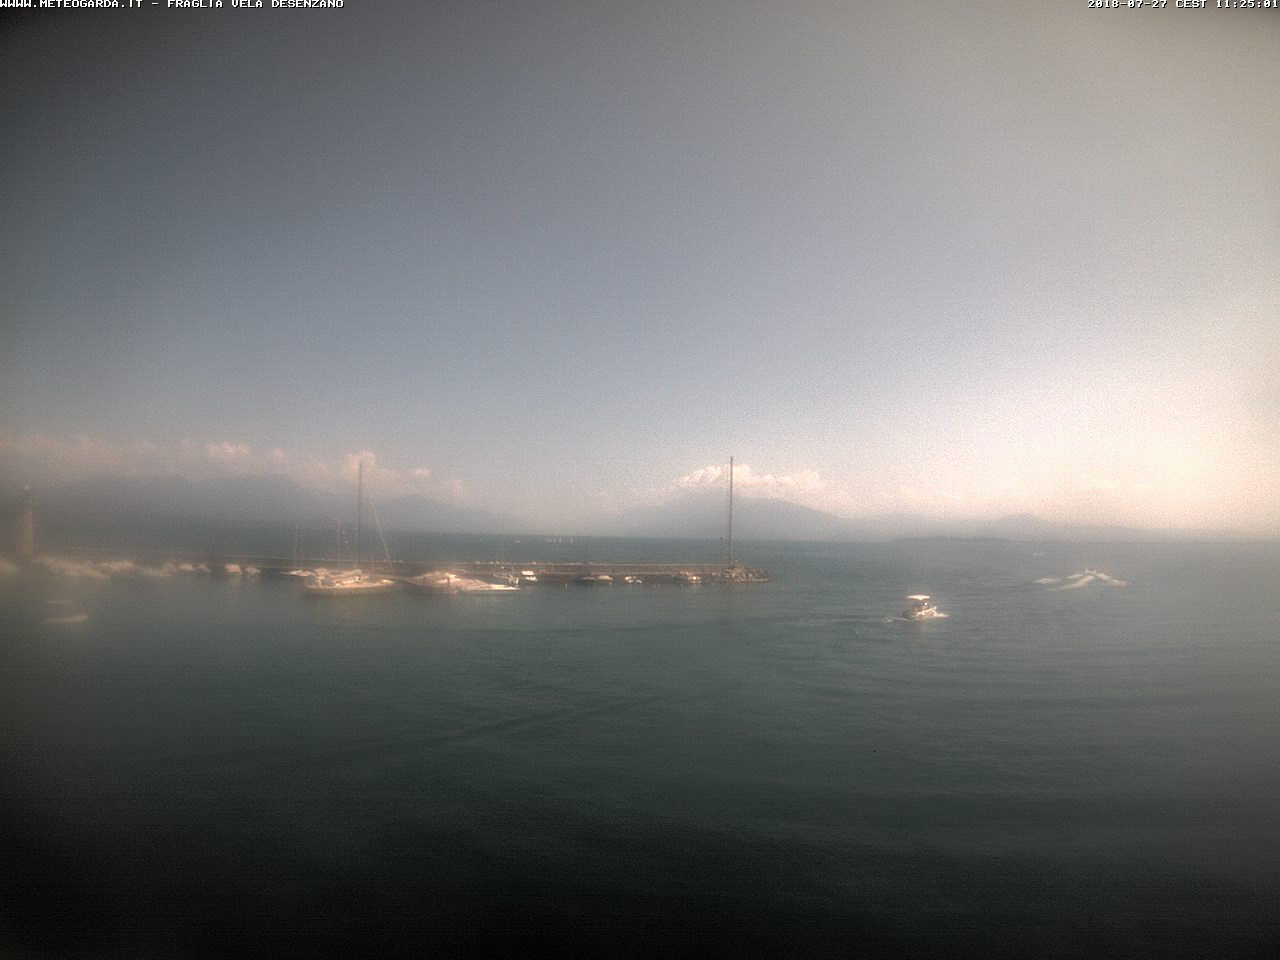 Webcam Gardasee Desenzano Fraglia